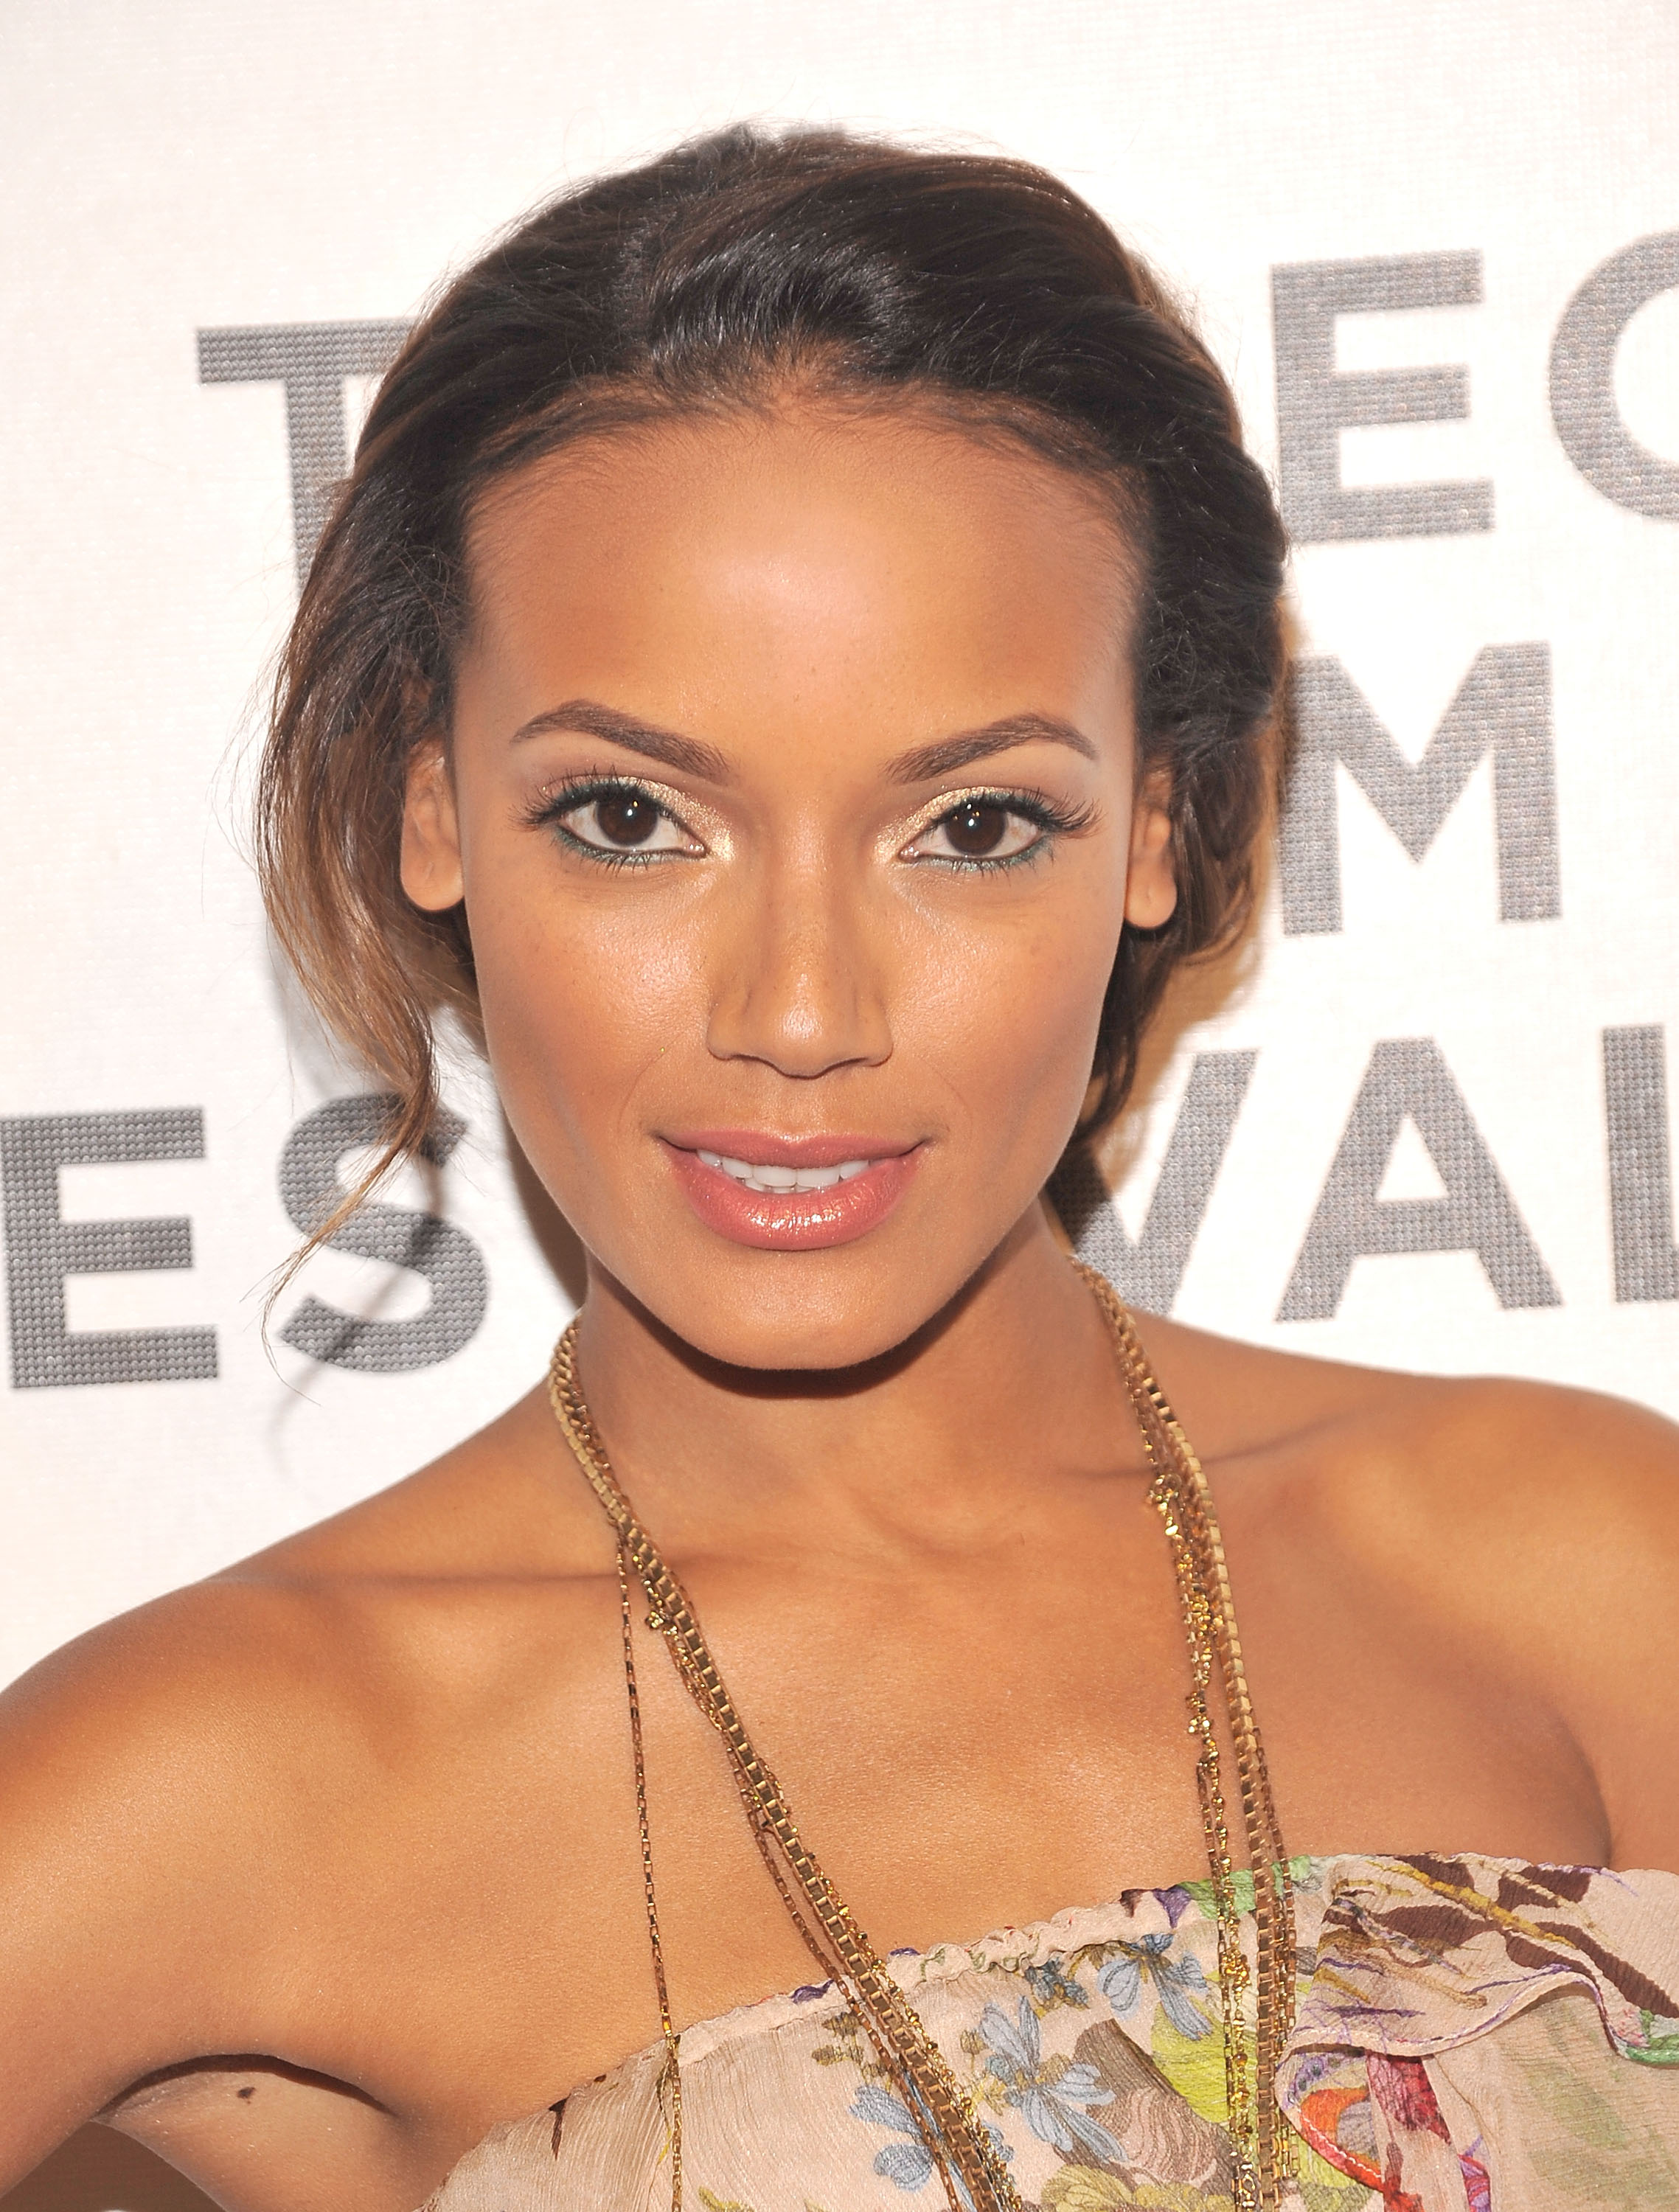 Selita Ebanks photo 241 of 340 pics, wallpaper - photo ...